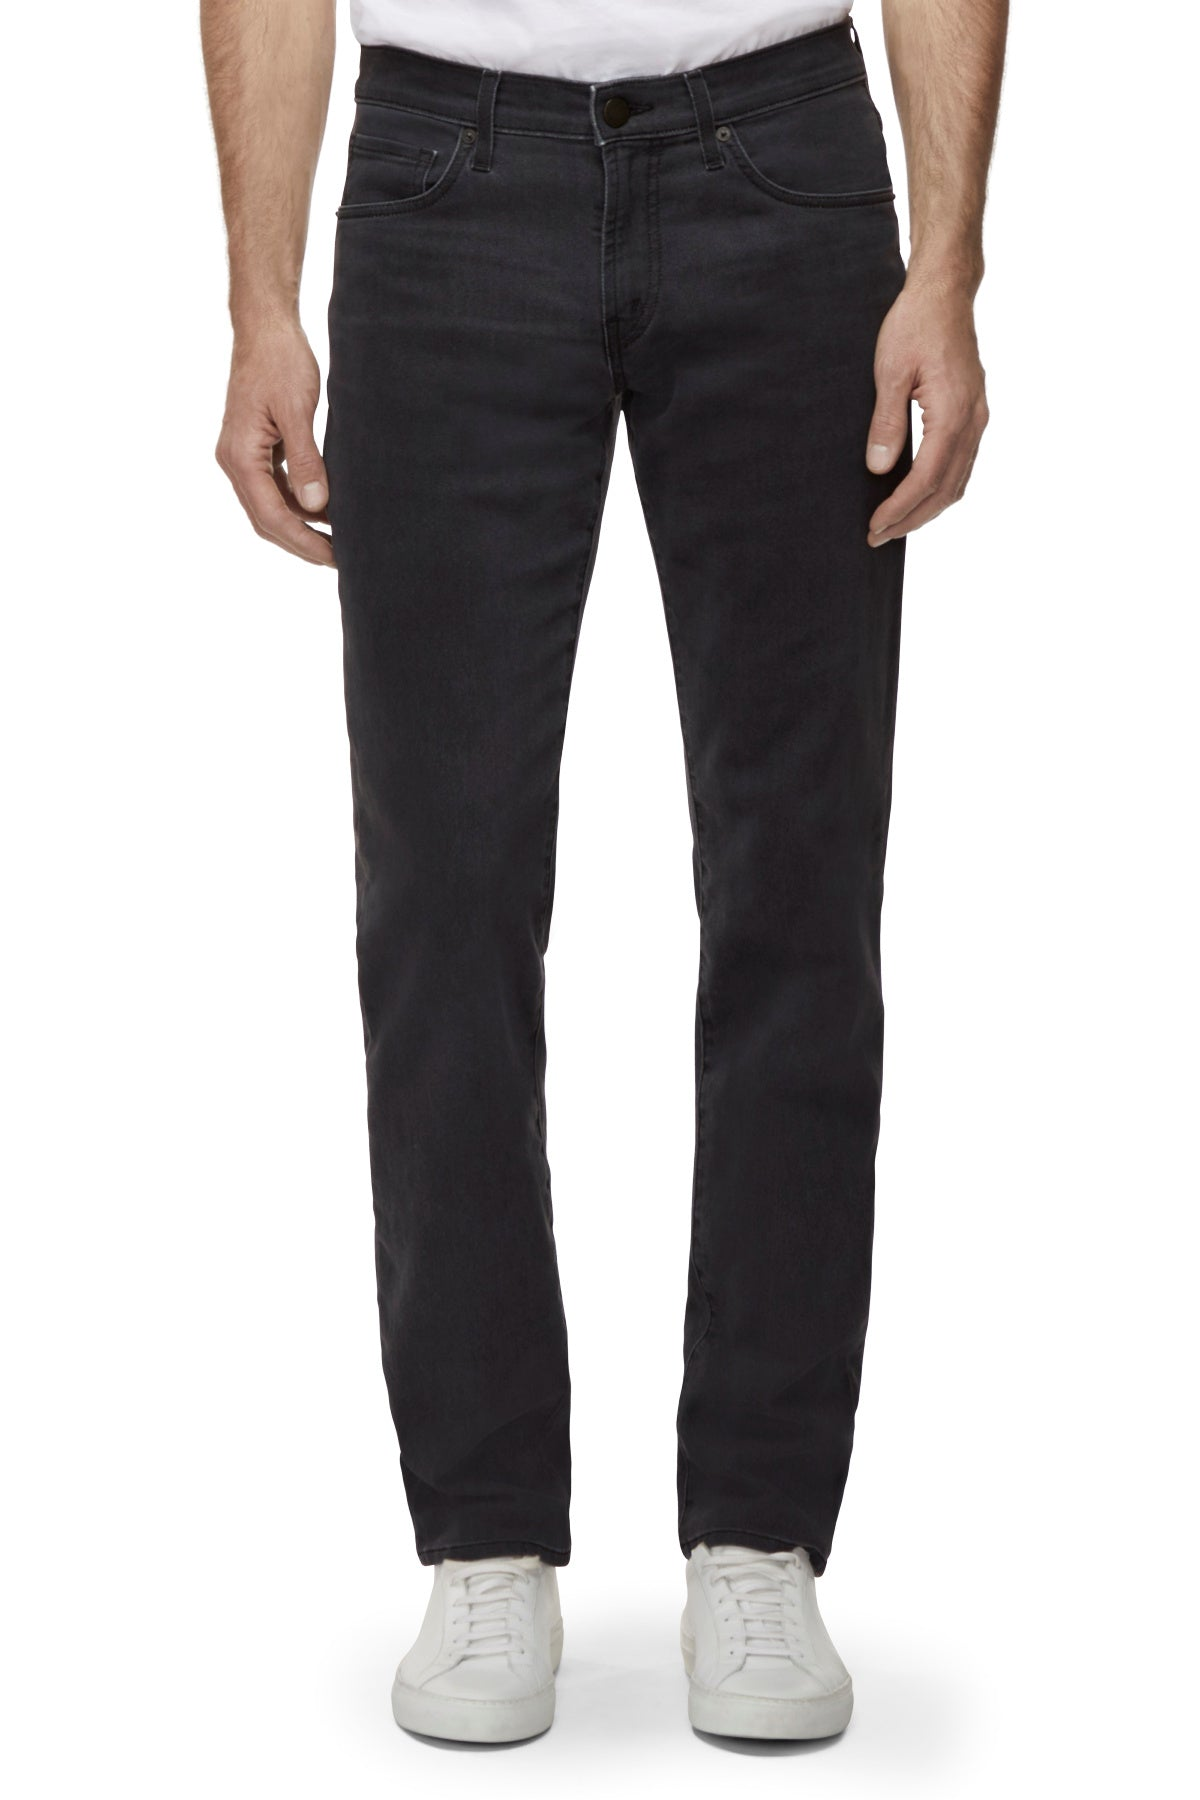 J Brand Kane Straight Fit Jean 240916T232